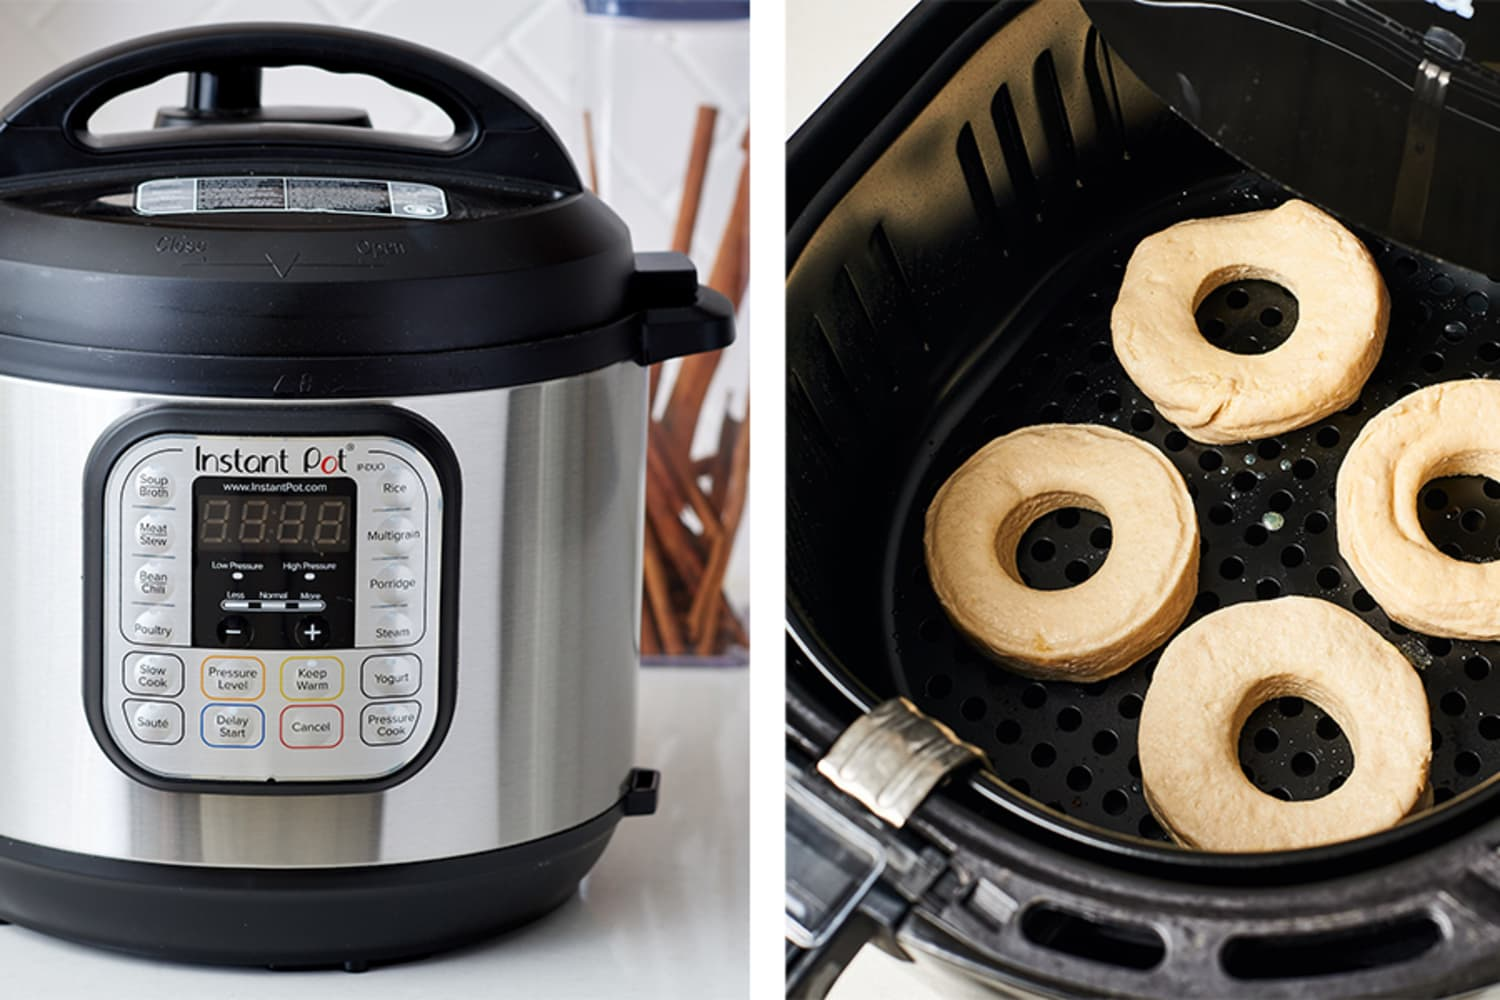 The Rumors Are True! Instant Pot Just Debuted a Multi-Function Air Fryer